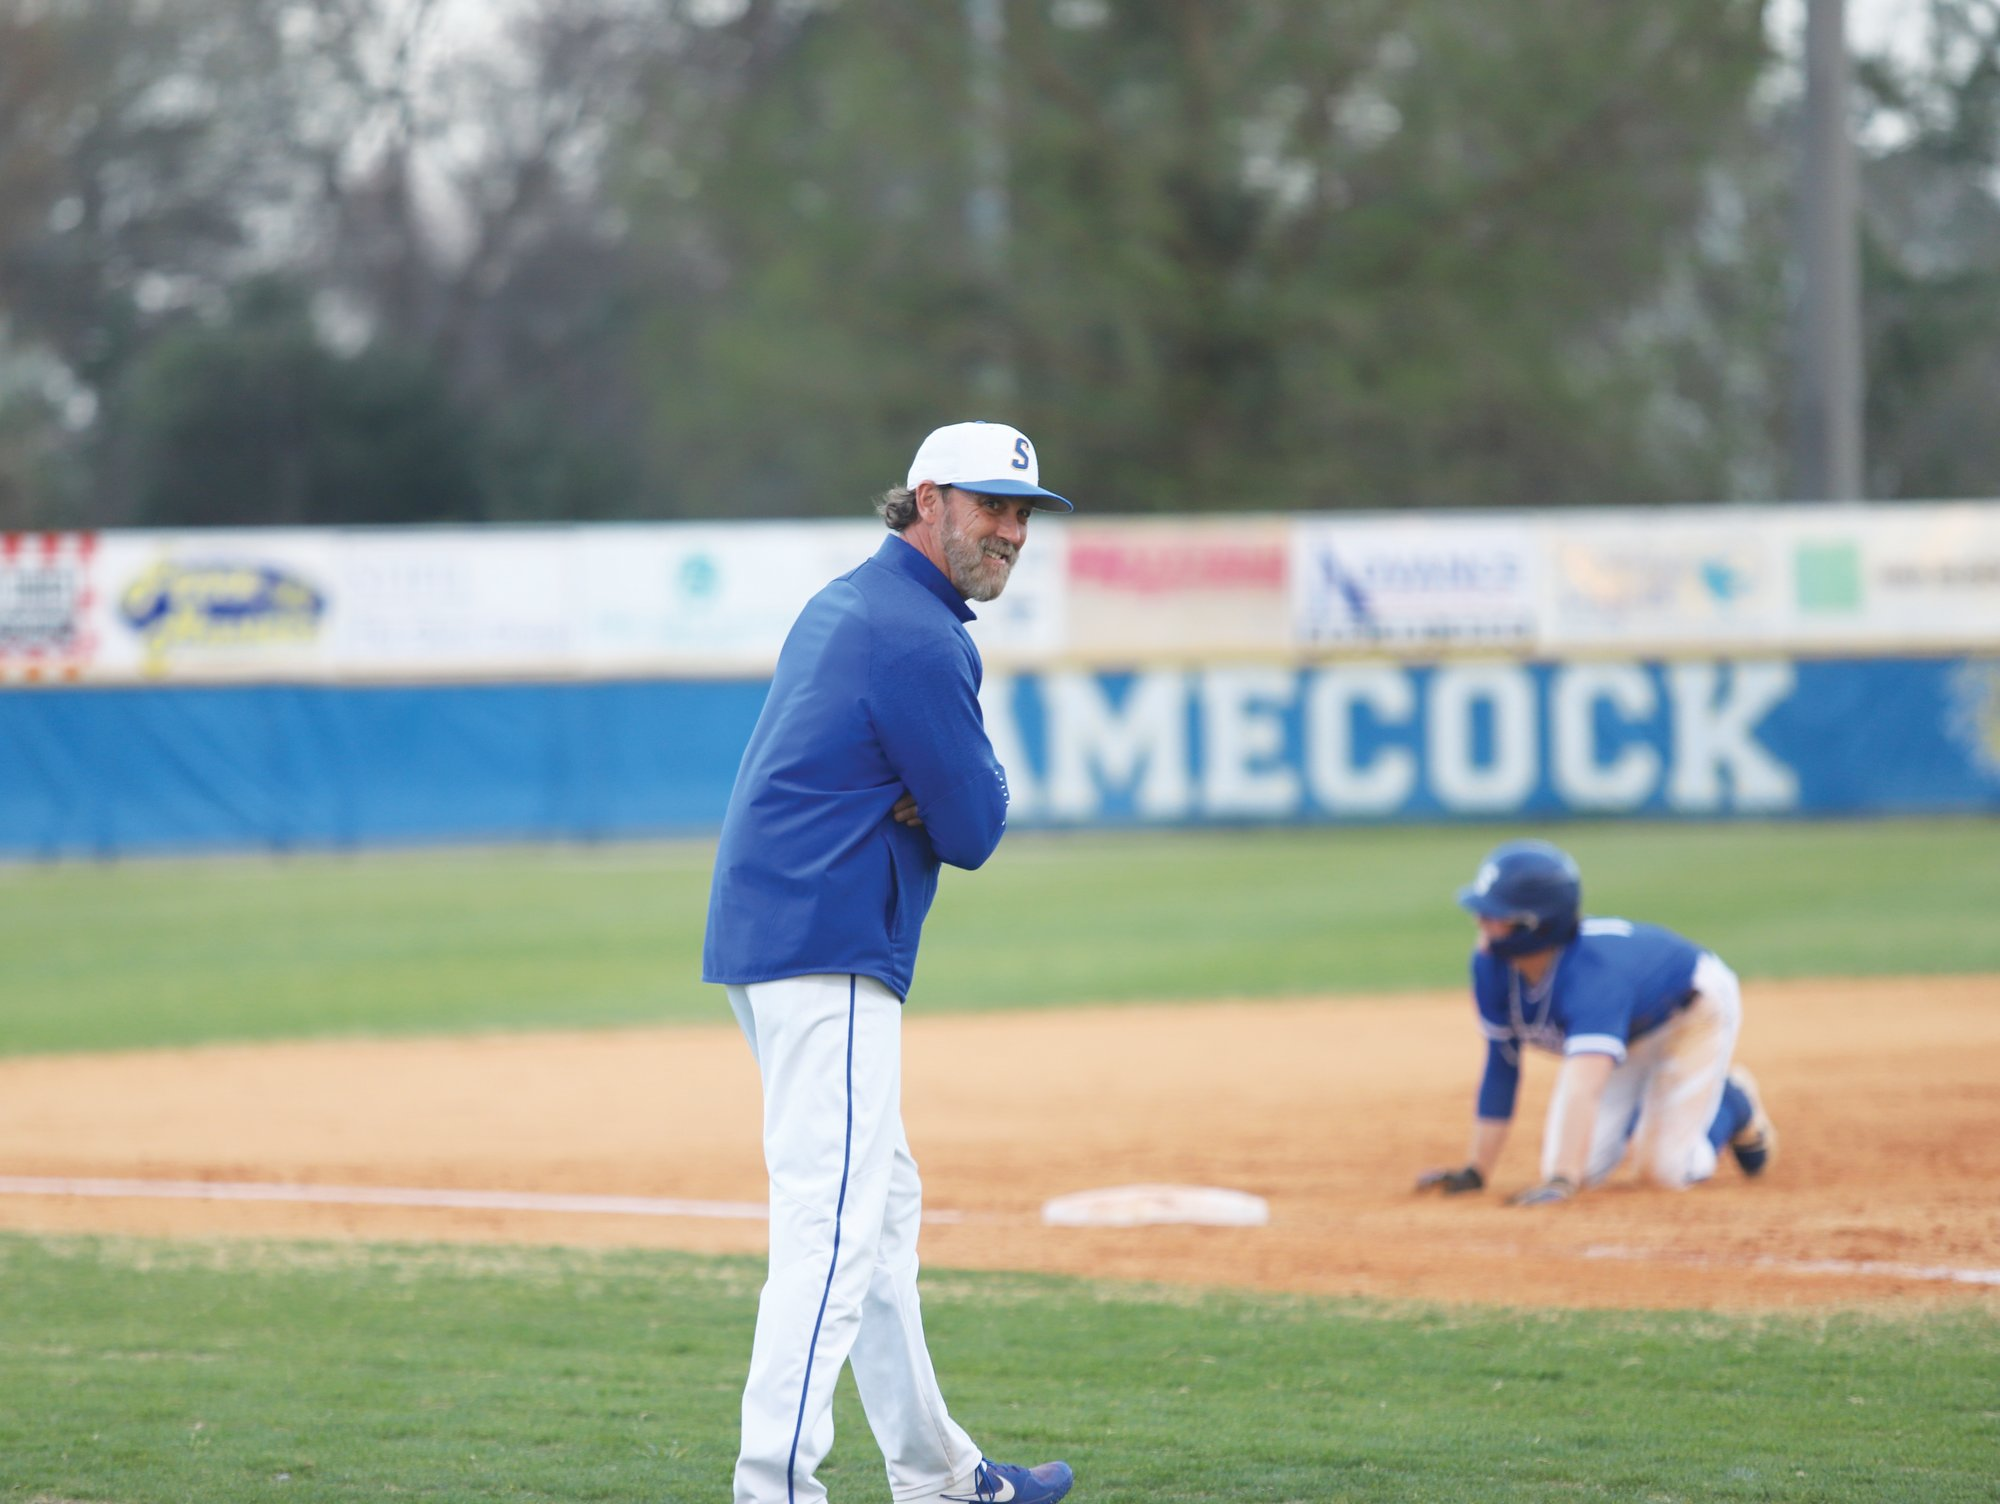 Sumter baseball coach Brooks Shumake, left, has stressed the importance of social distancing with his athletes while sports are on hiatus during the coronavirus pandemic.